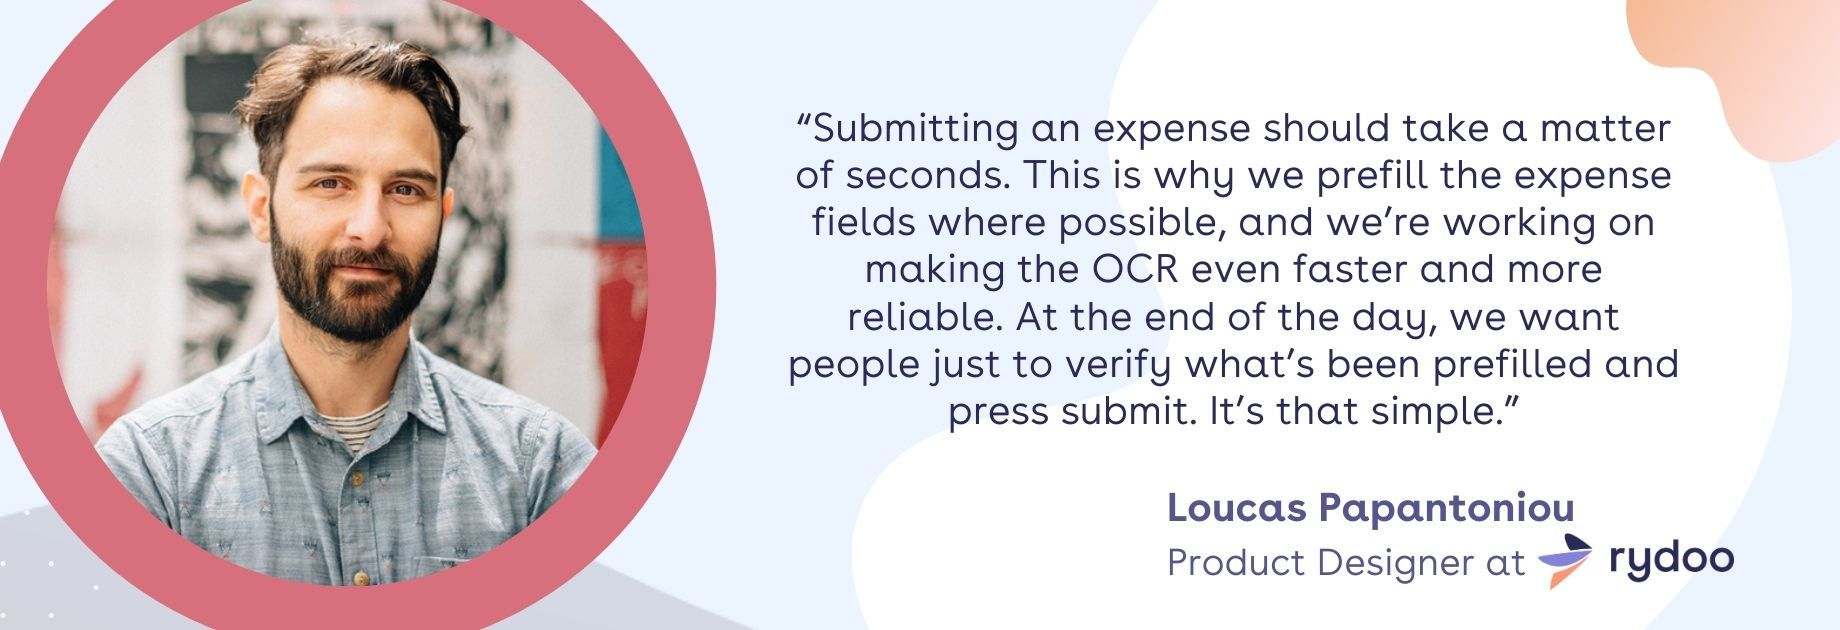 """""""Submitting an expense should take a matter of seconds. This is why we prefill the expense fields where possible, and we're working on making the OCR even faster and more reliable. At the end of the day, we want people just to verify what's been pre-filled and press submit. It's that simple."""""""